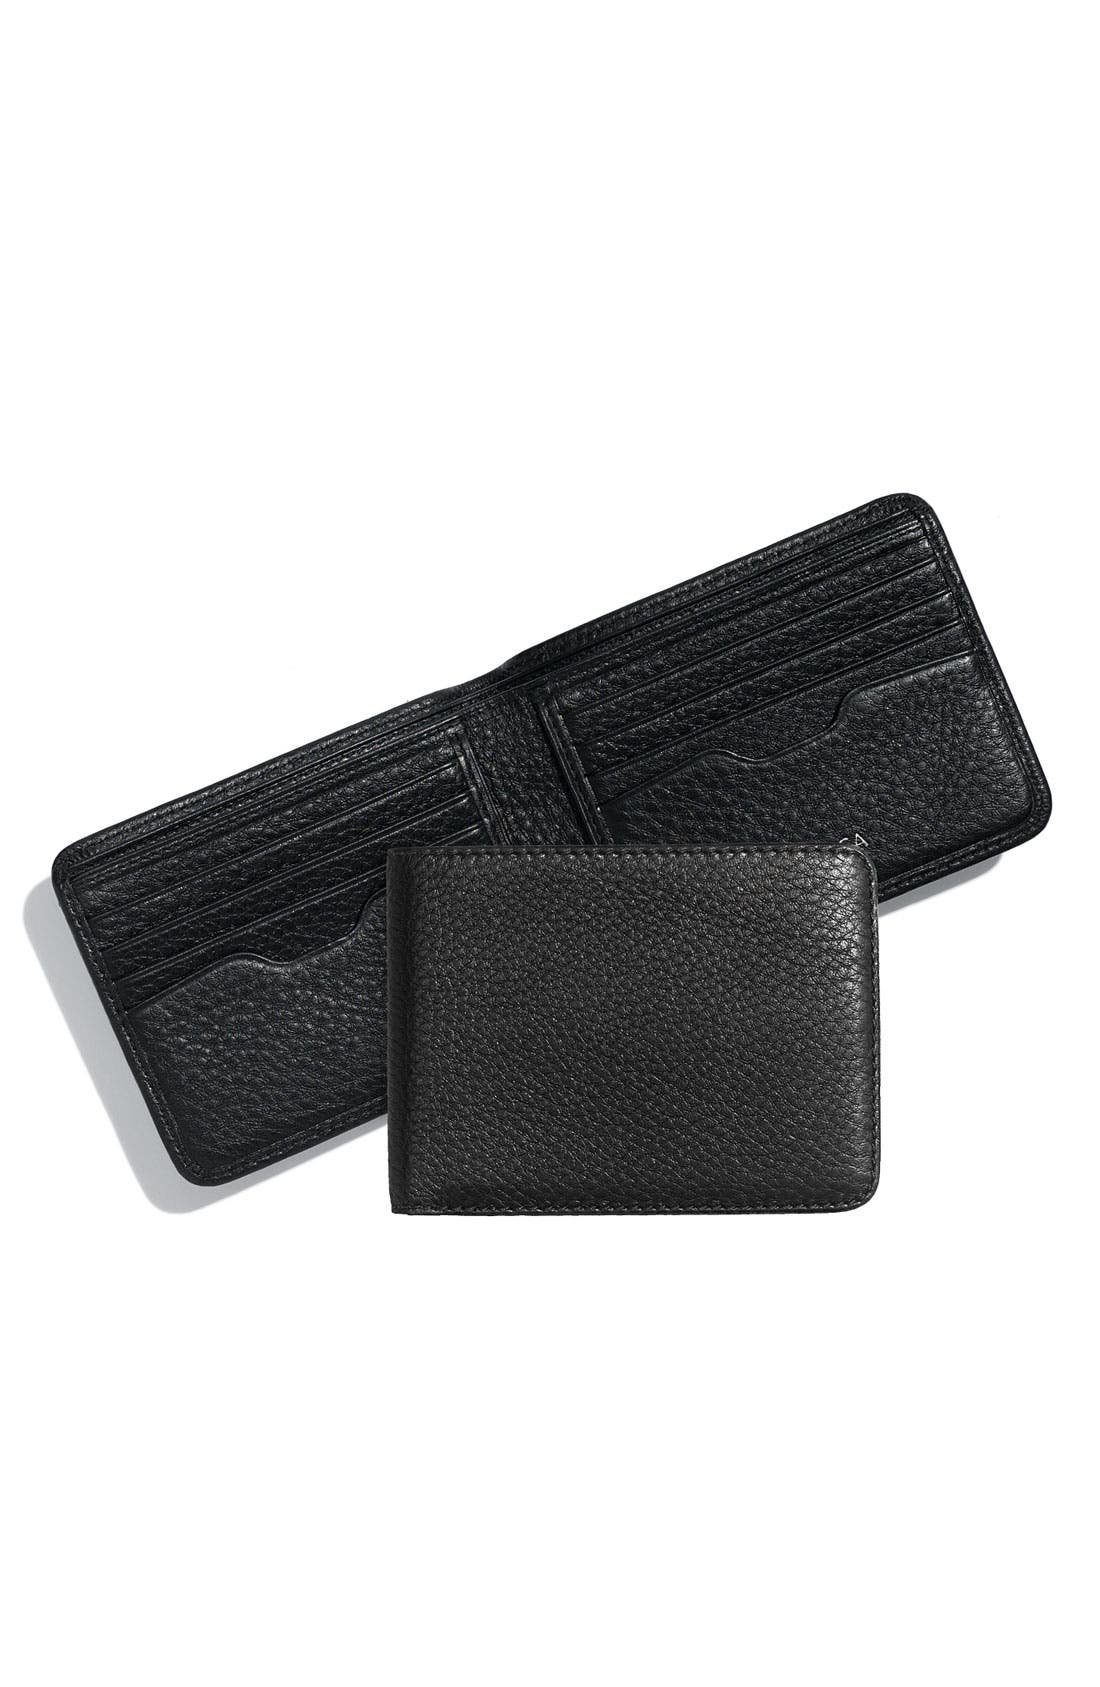 Alternate Image 1 Selected - Bosca 'Deluxe Executive' Shrunken Leather Wallet